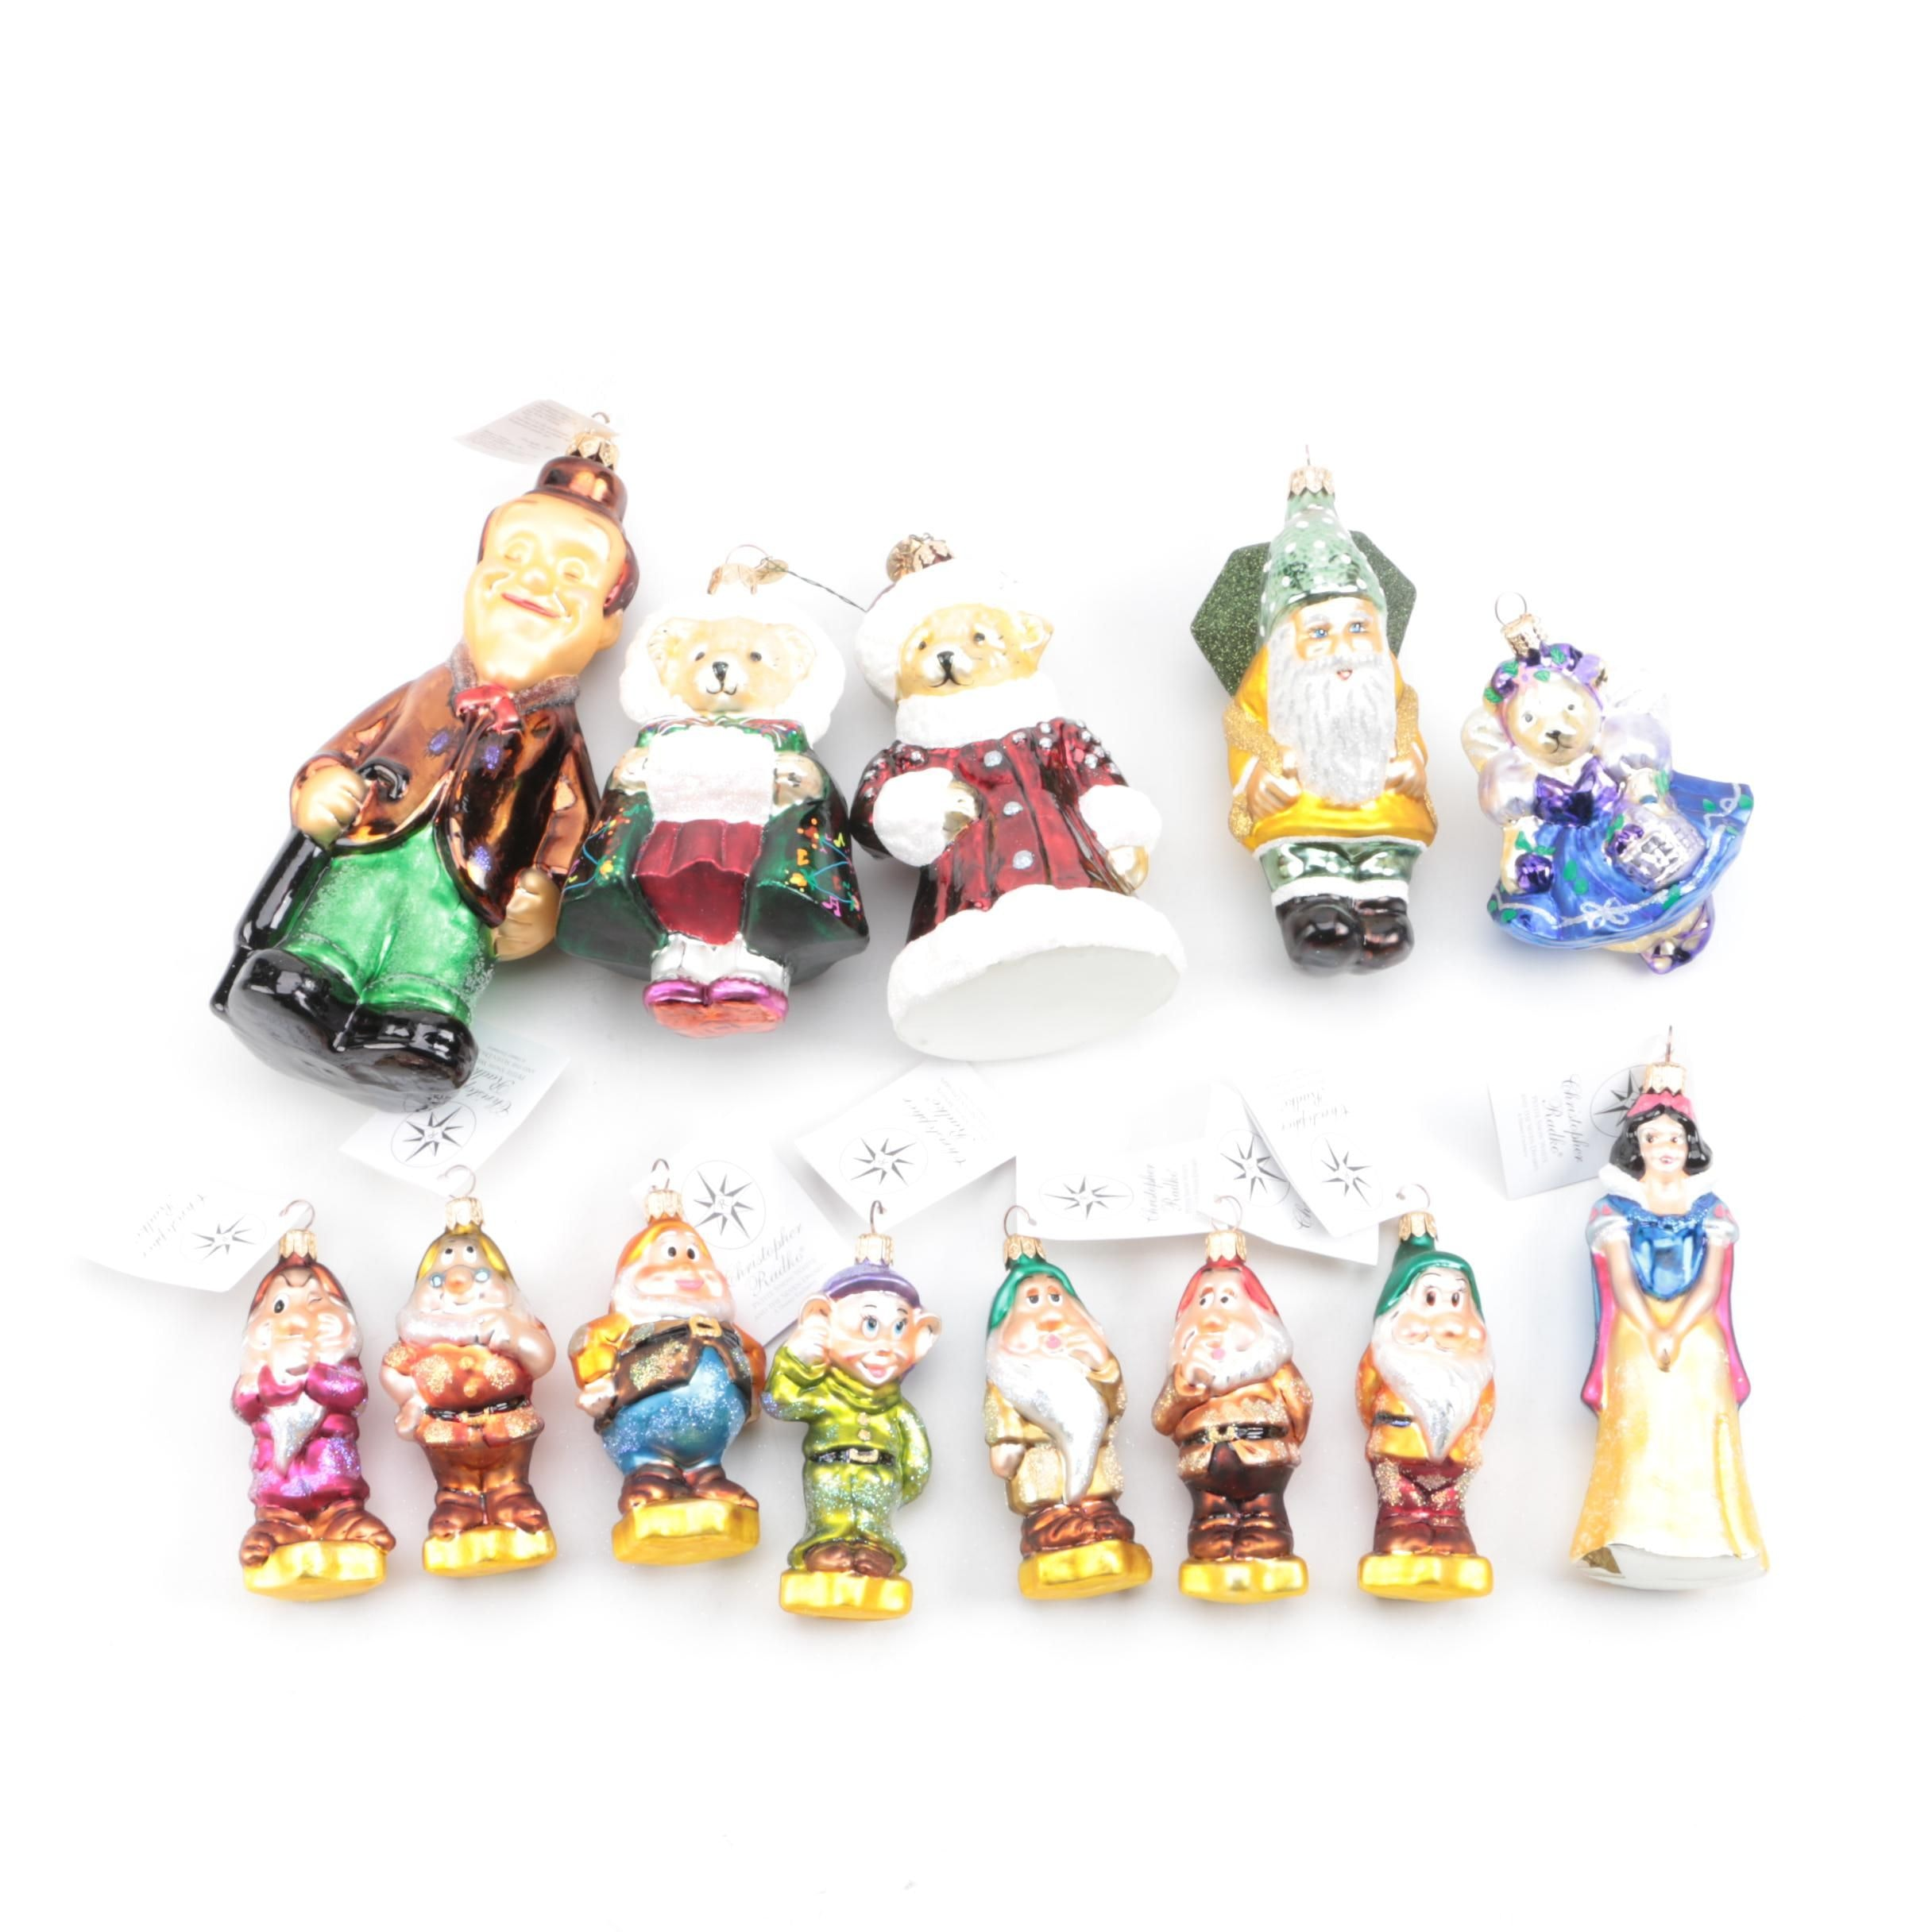 Christopher Radko Hand Painted Glass Christmas Ornaments